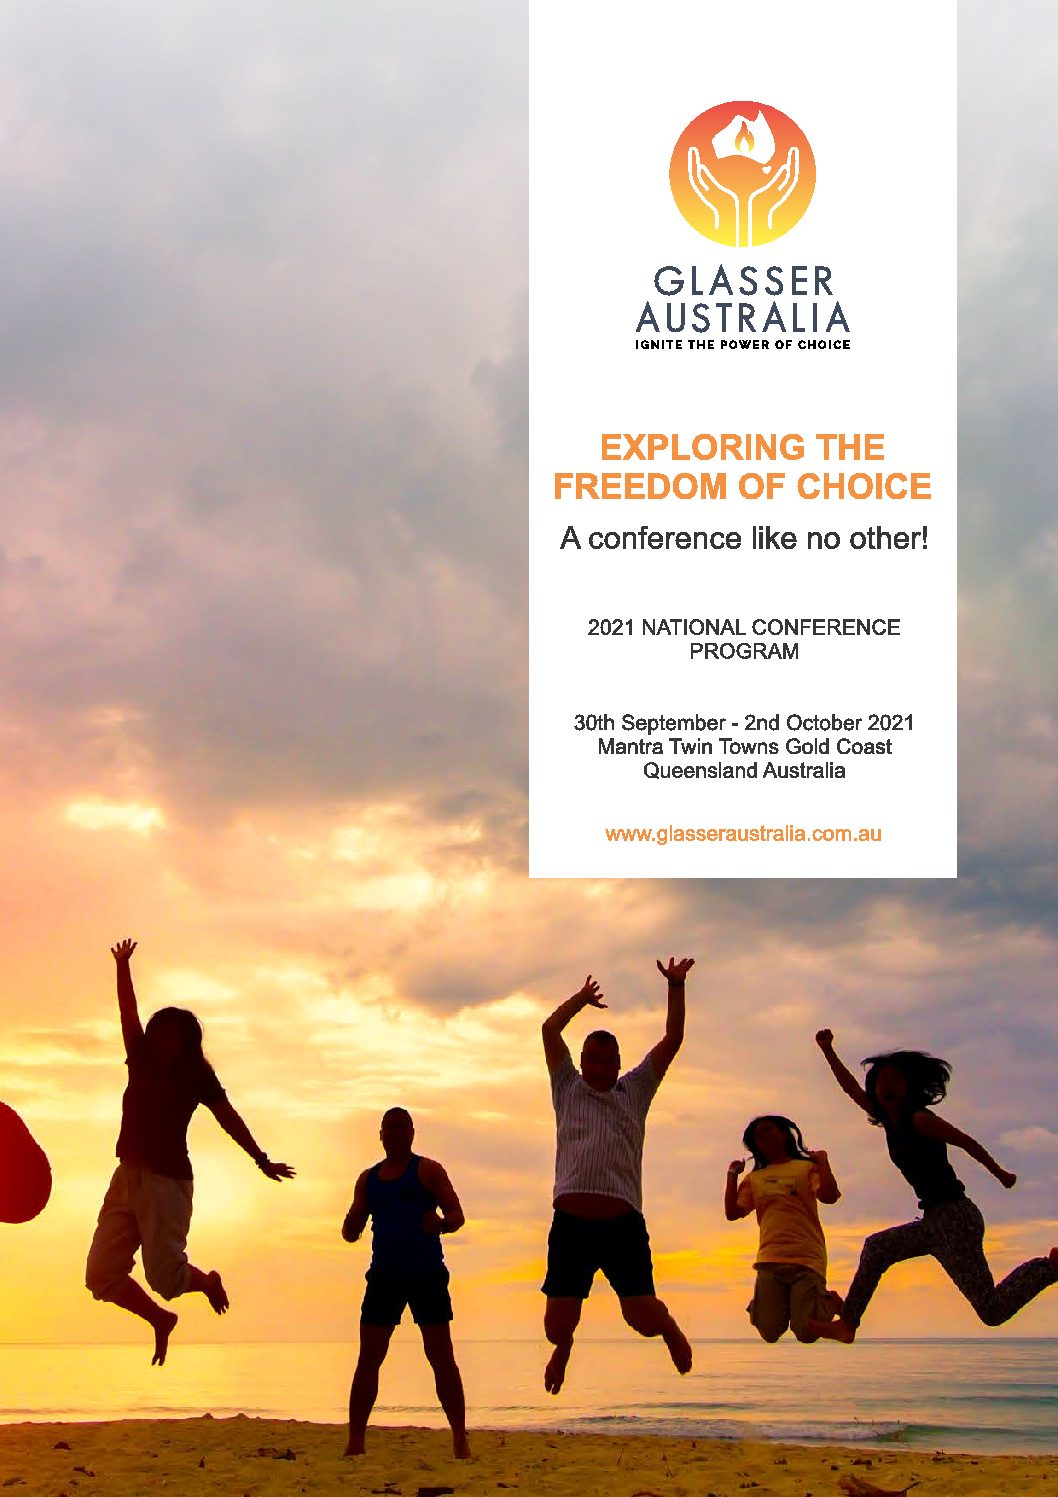 2021 Glasser Australia National Conference – Exploring the Freedom of Choice